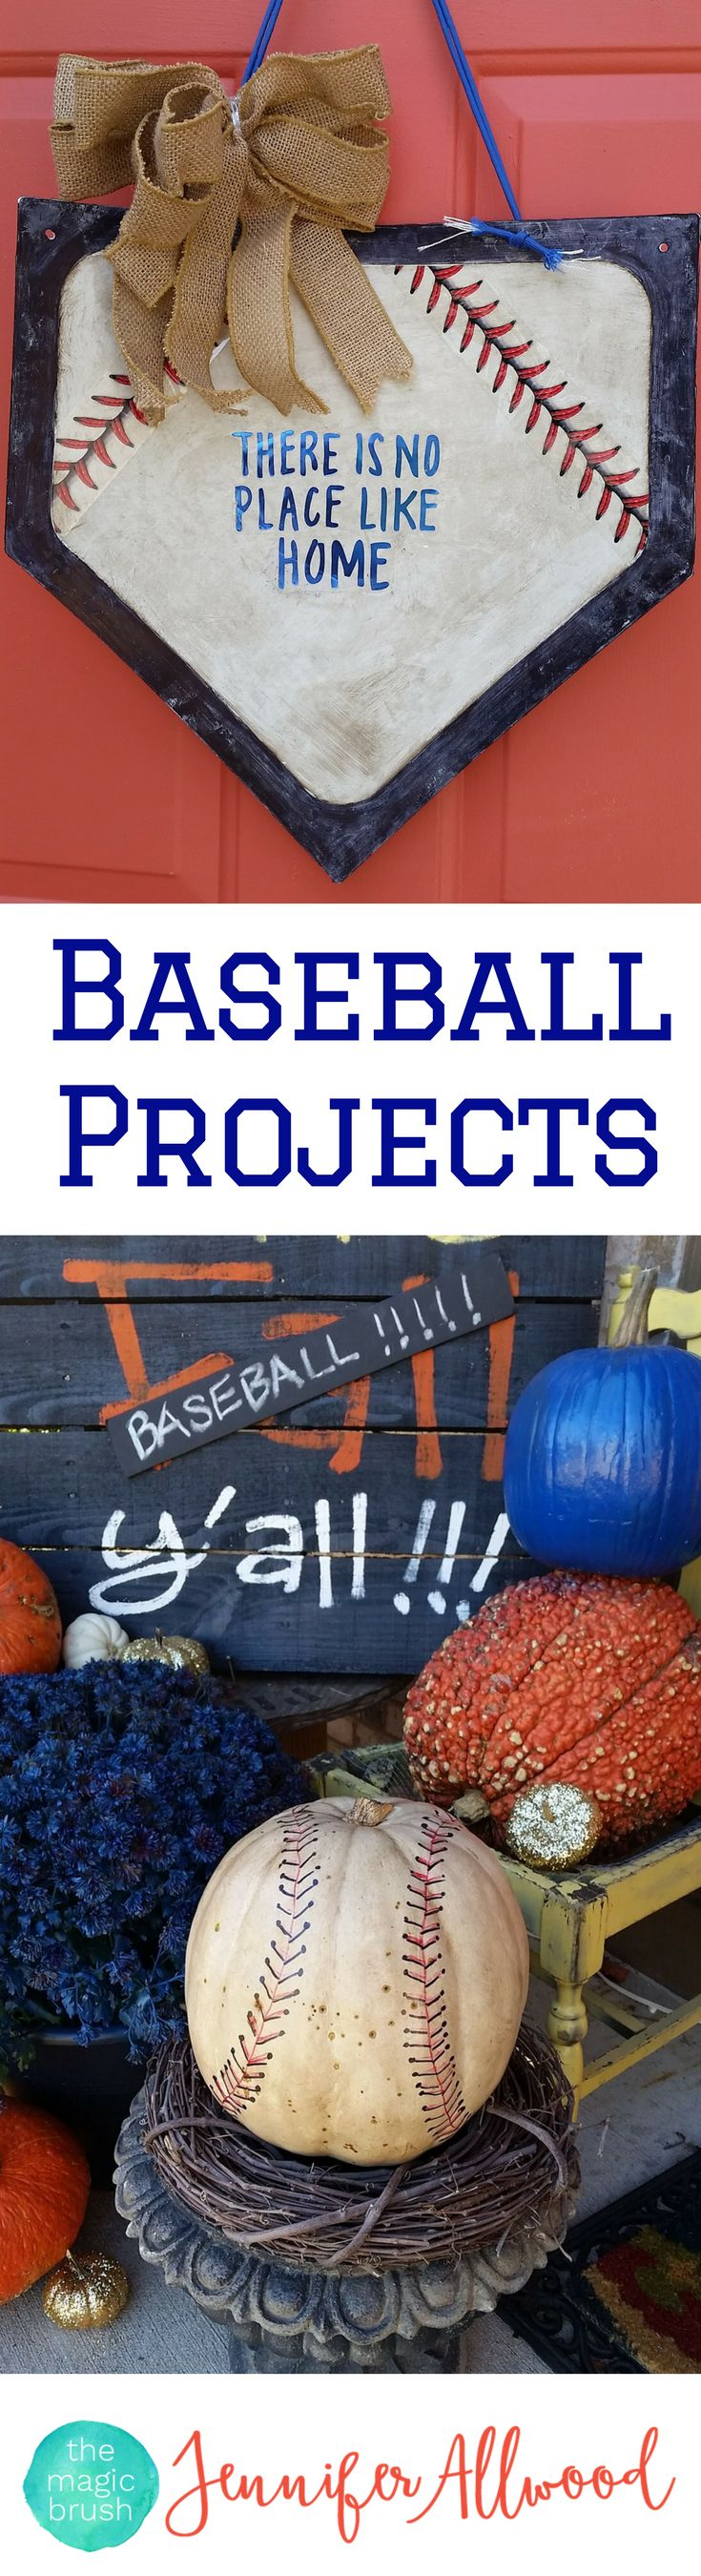 DIY Baseball Projects and Baseball Decor by theMagicBrushinc.com Fun ideas for door and porch decorations, baseball pumpkins, baseball-themed bedrooms and more!